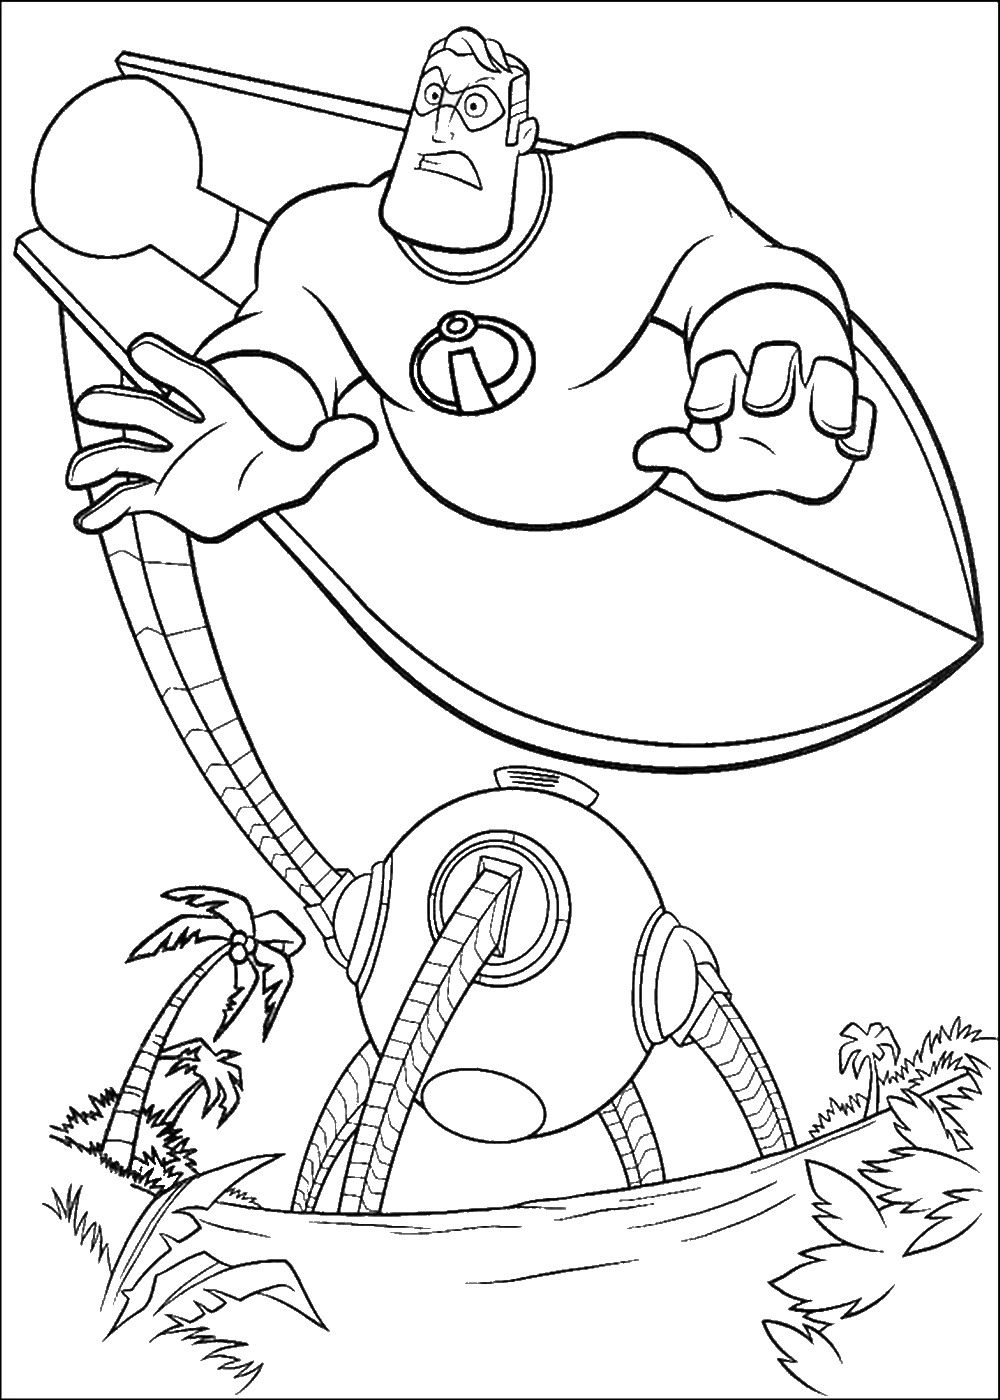 coloring pages disney incredibles the incredibles coloring pages coloring disney incredibles pages